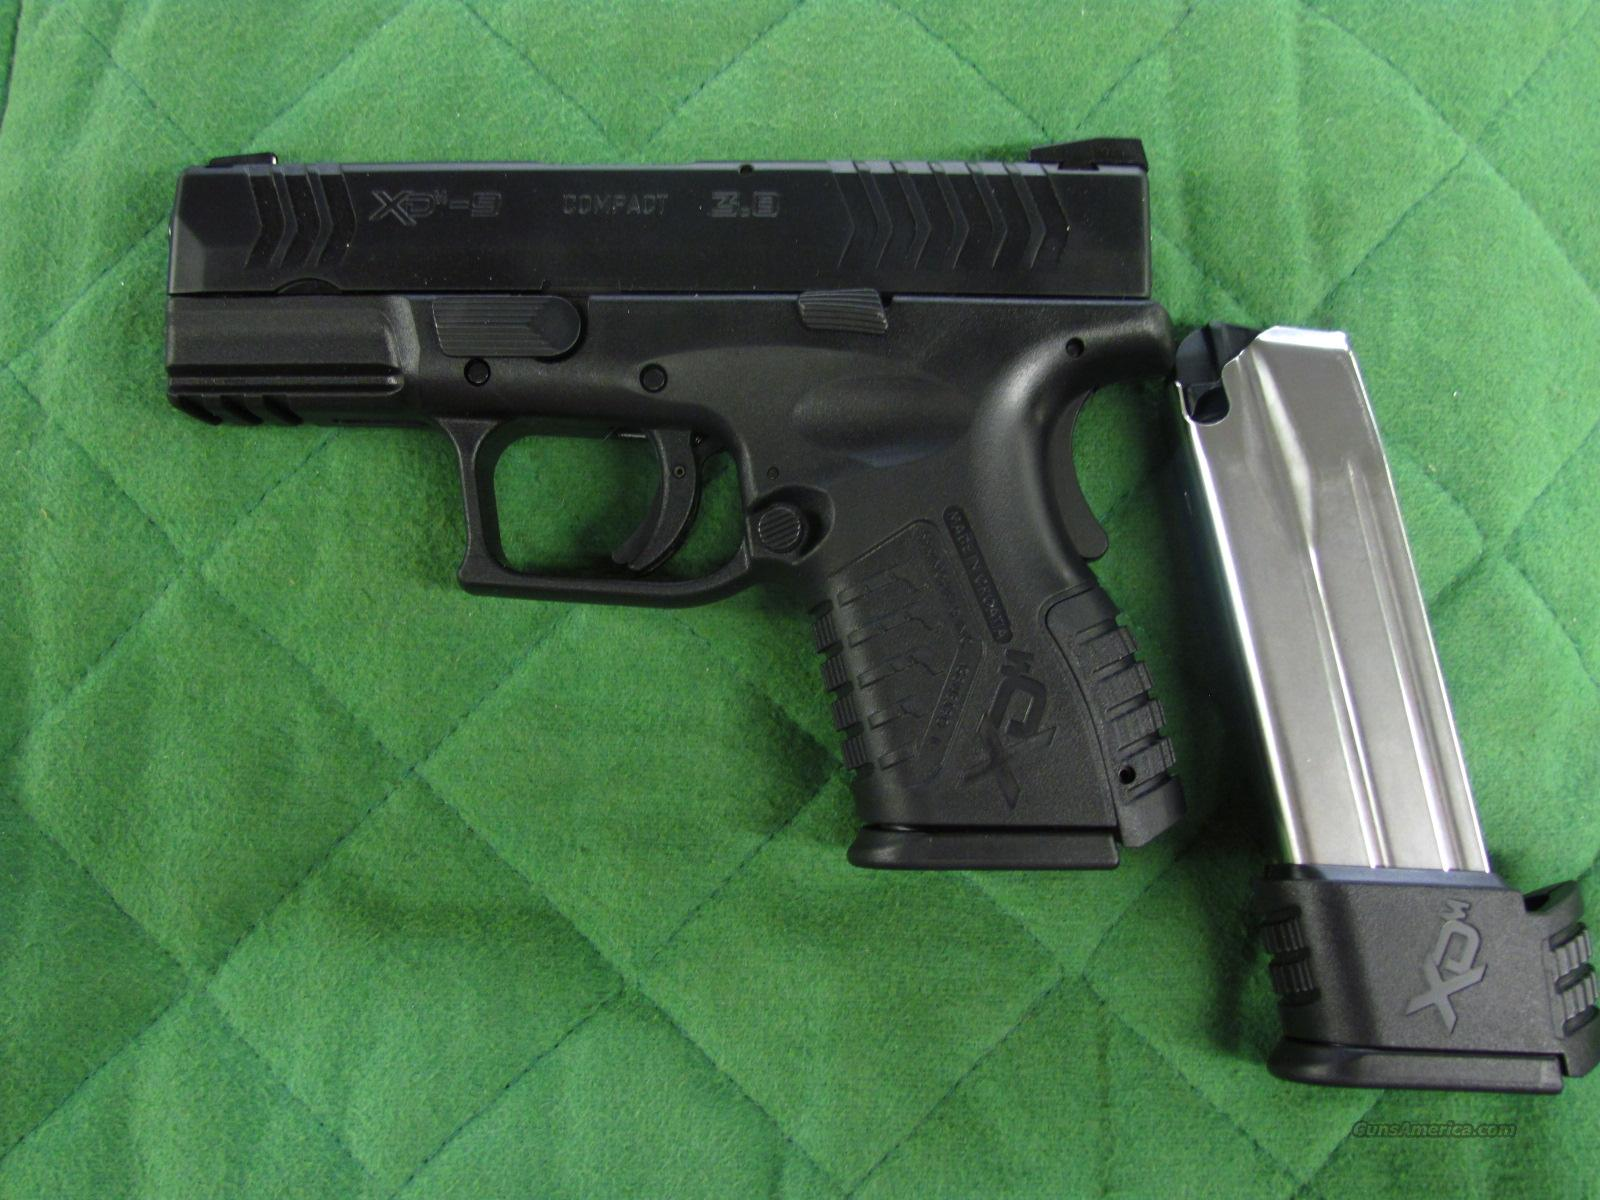 Springfield XDM 3.8 Compact 9 mm  **NEW**  Guns > Pistols > Springfield Armory Pistols > XD (eXtreme Duty)